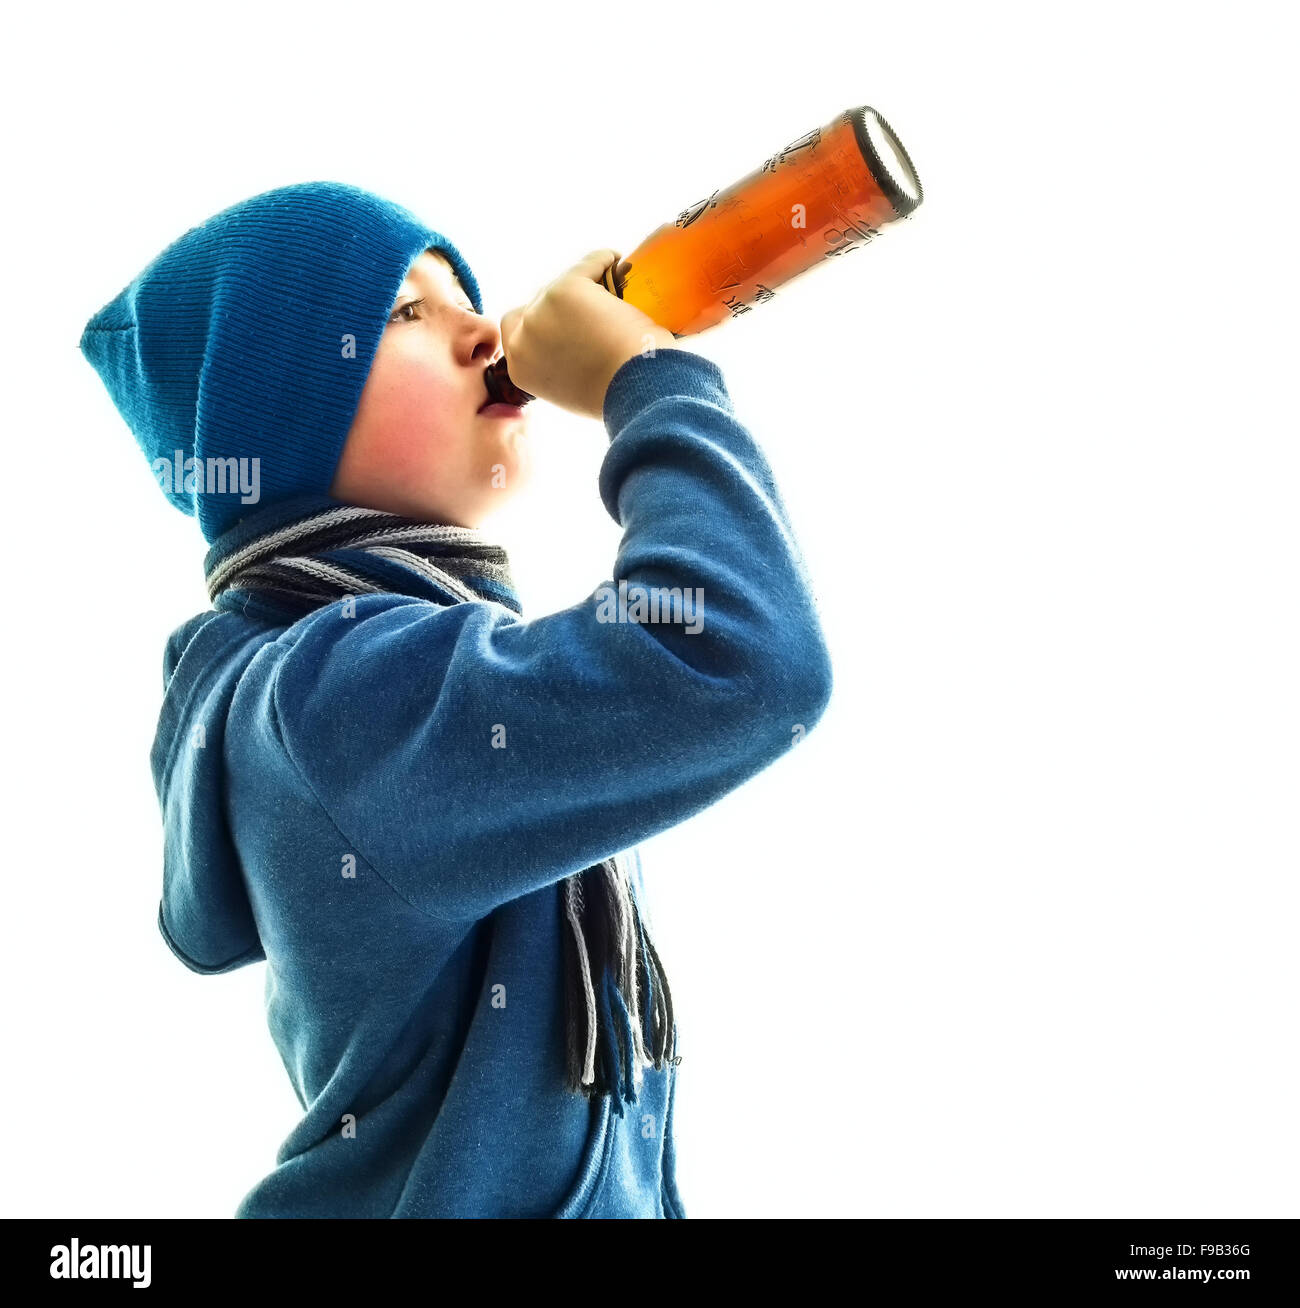 Underage Drinking Young Underage Boy Drinks Beer From Bottle, Youth social issues concept - Stock Image